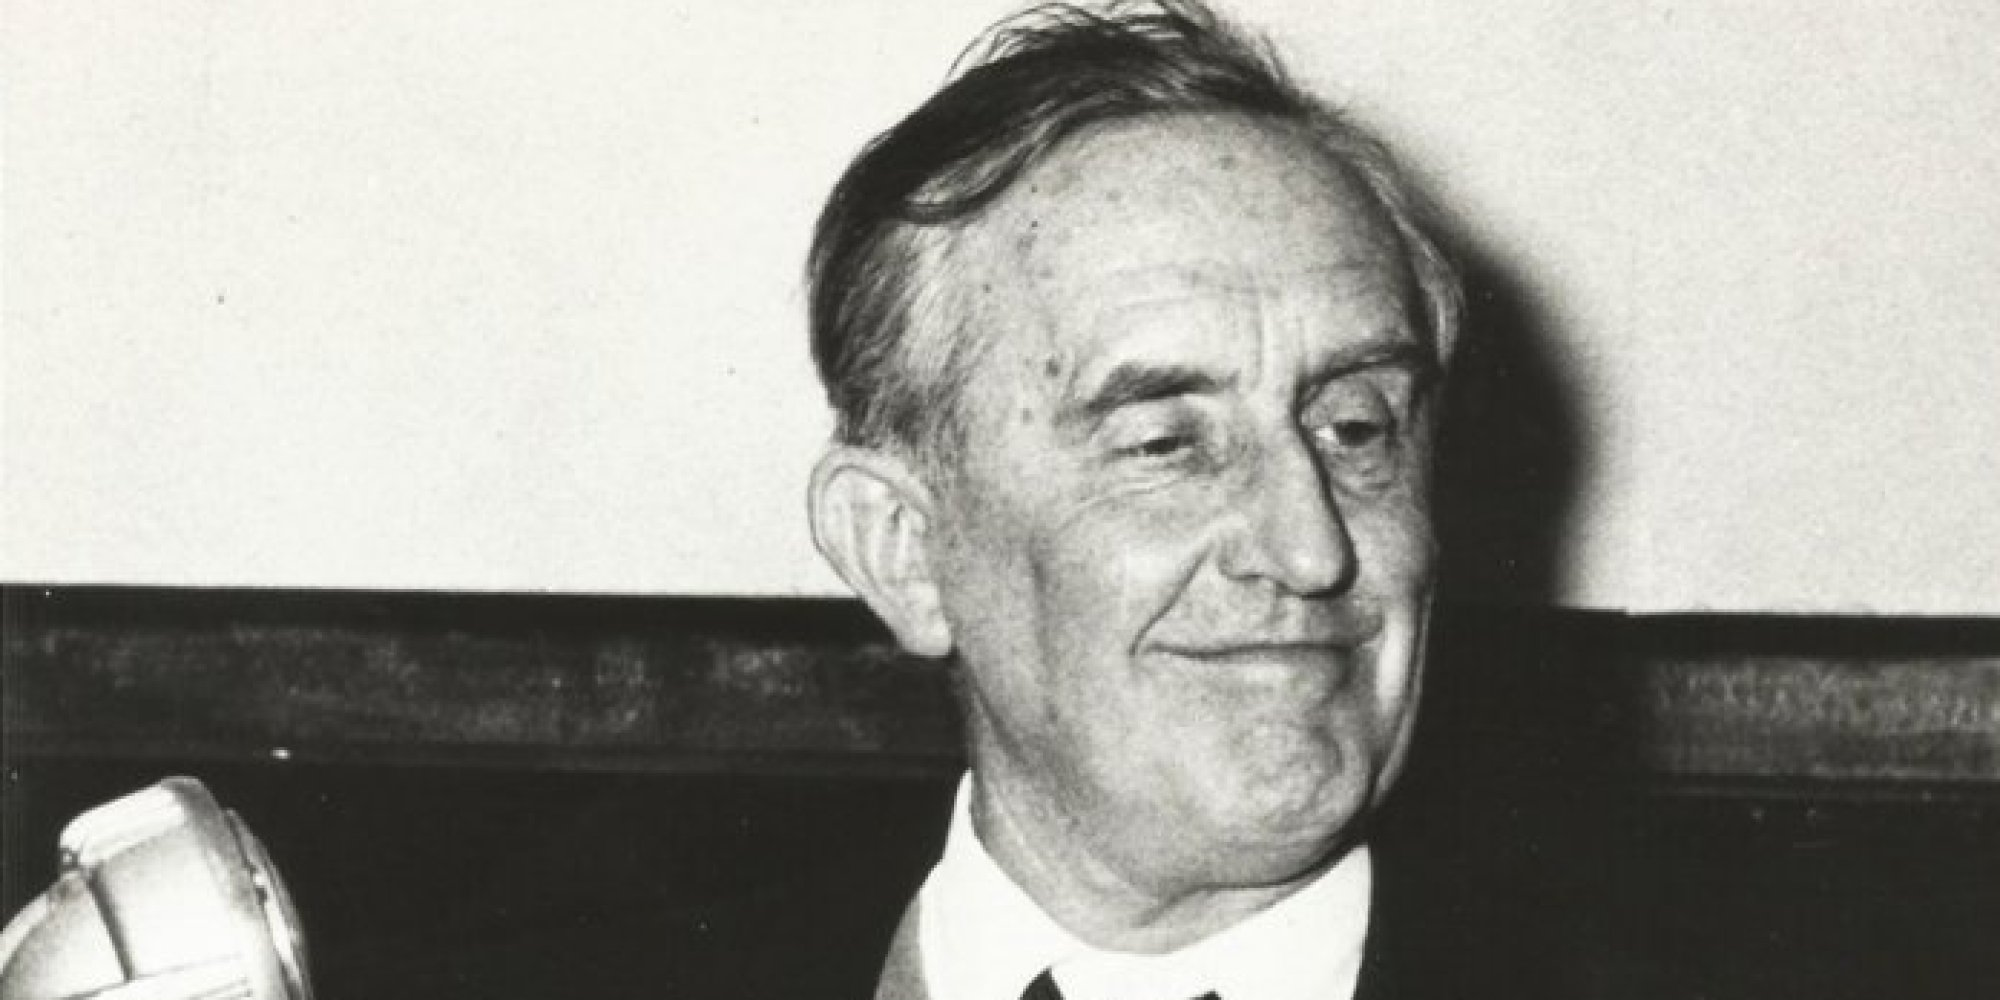 Jrr Tolkien Reveals True Meaning Of The Lord Of The Rings In